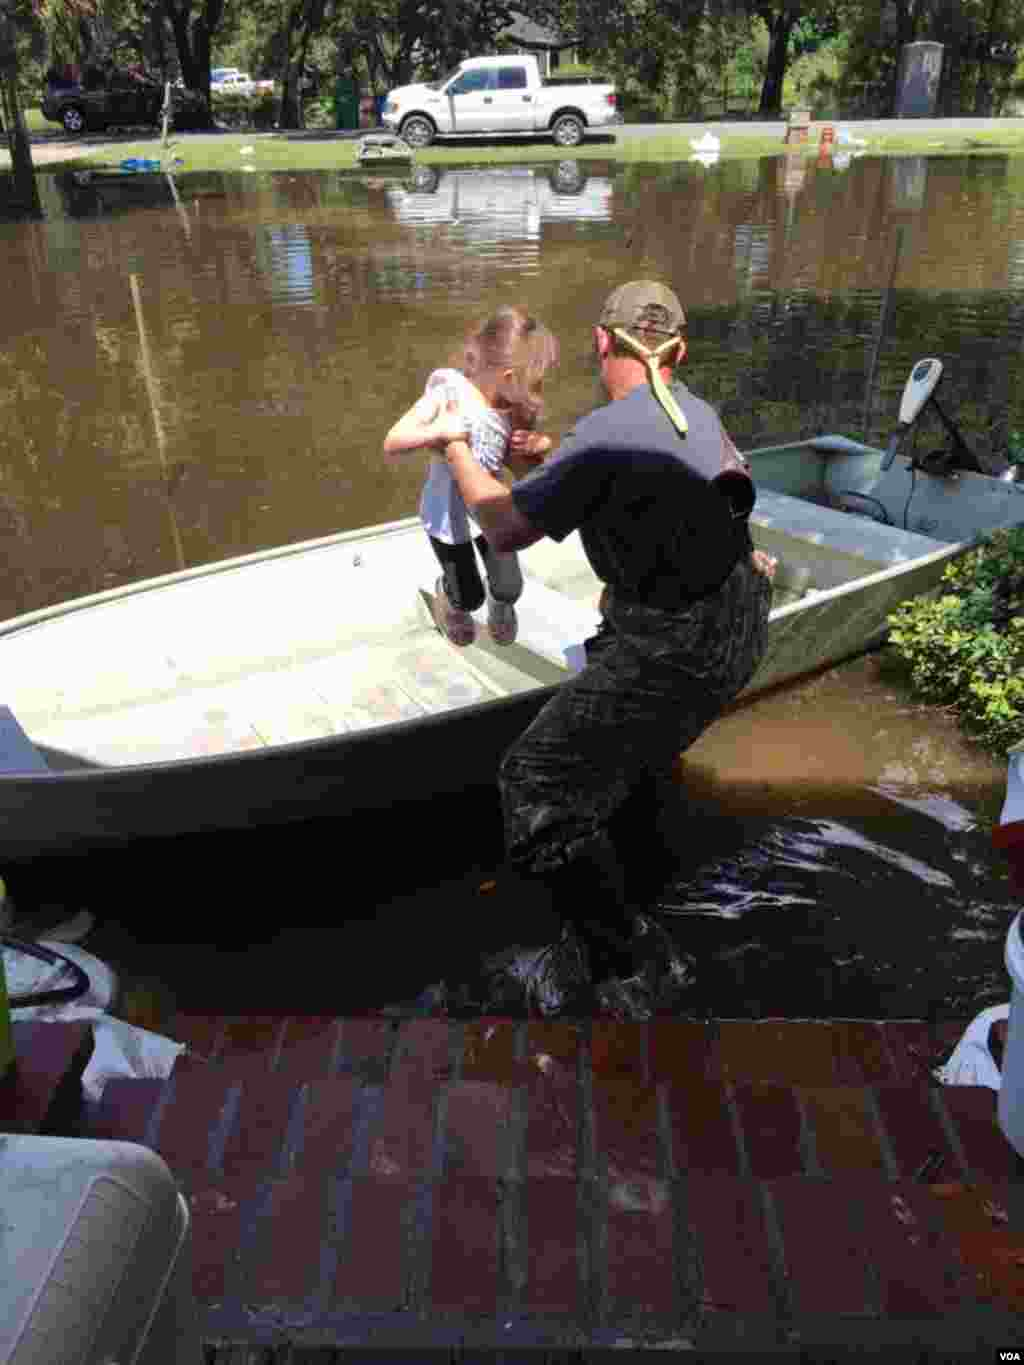 Graham Kinchen of St. Amant, Louisiana, takes time off to give his daughter a boat ride — in their front yard. (M. Melton/VOA)